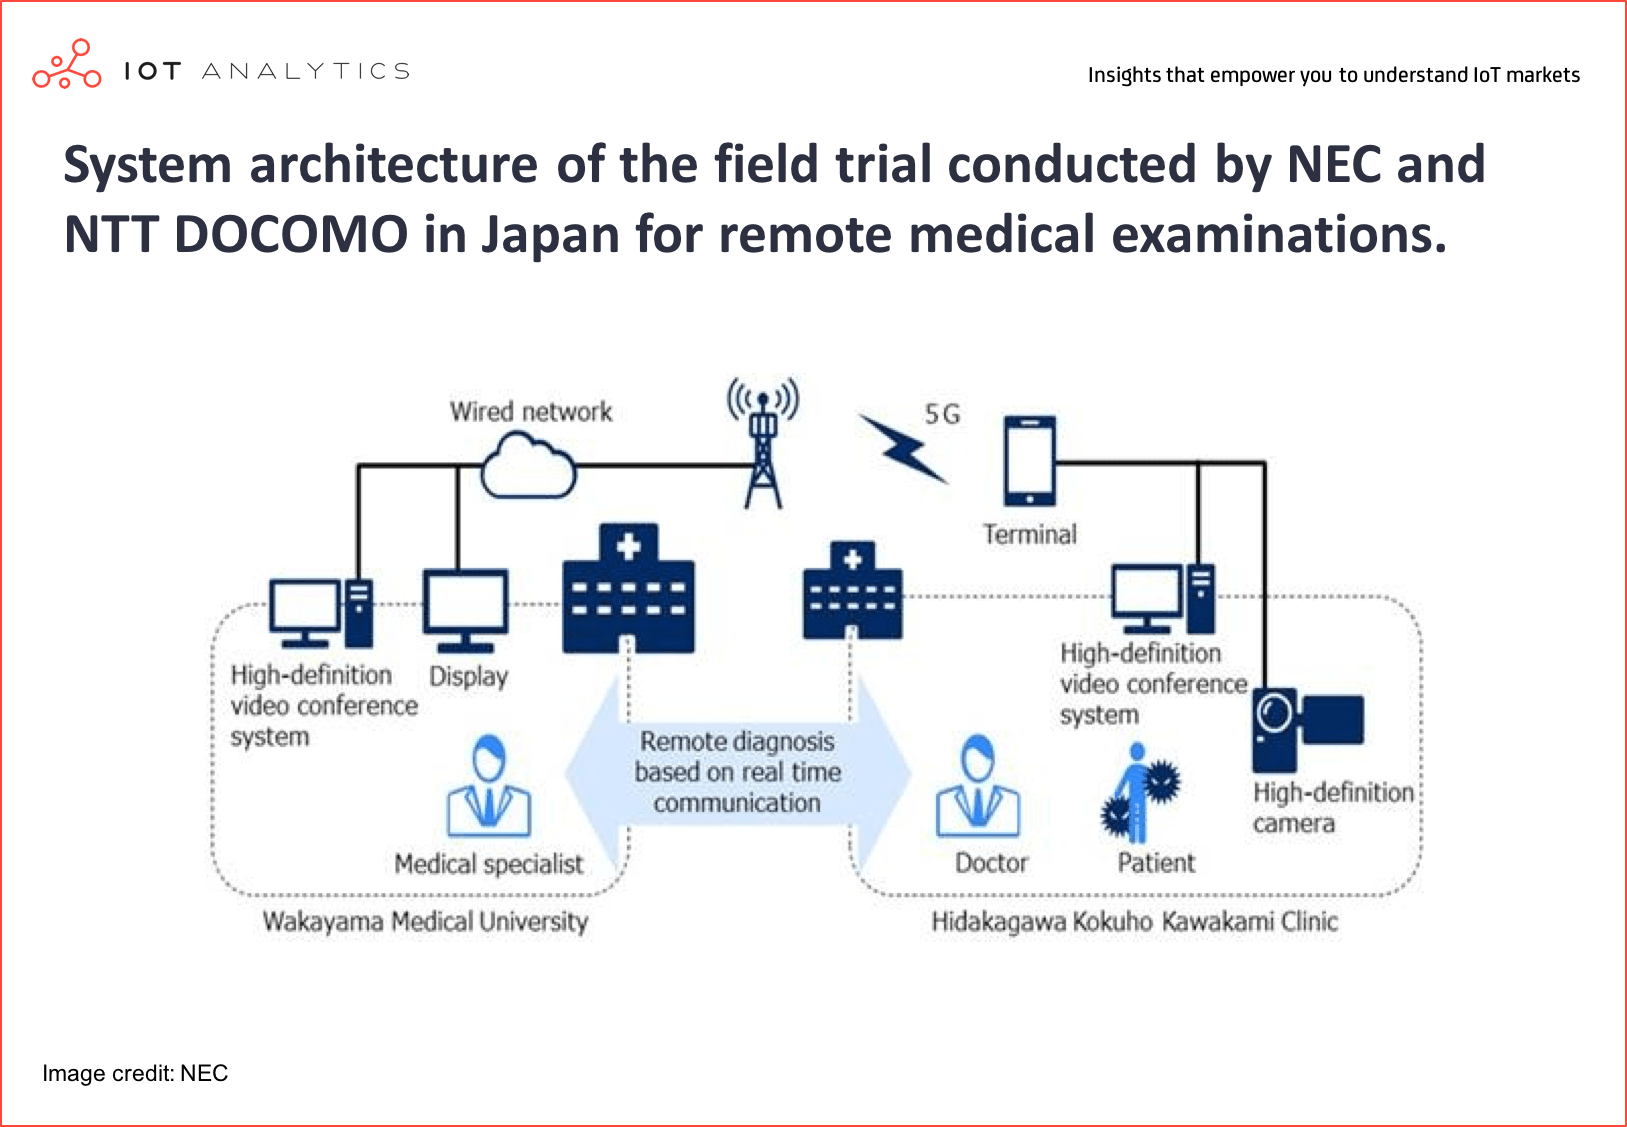 Intelligent Connectivity - System architecture of the field trial conducted by NEC and NTT DOCOMO in Japan for remote medical examinations